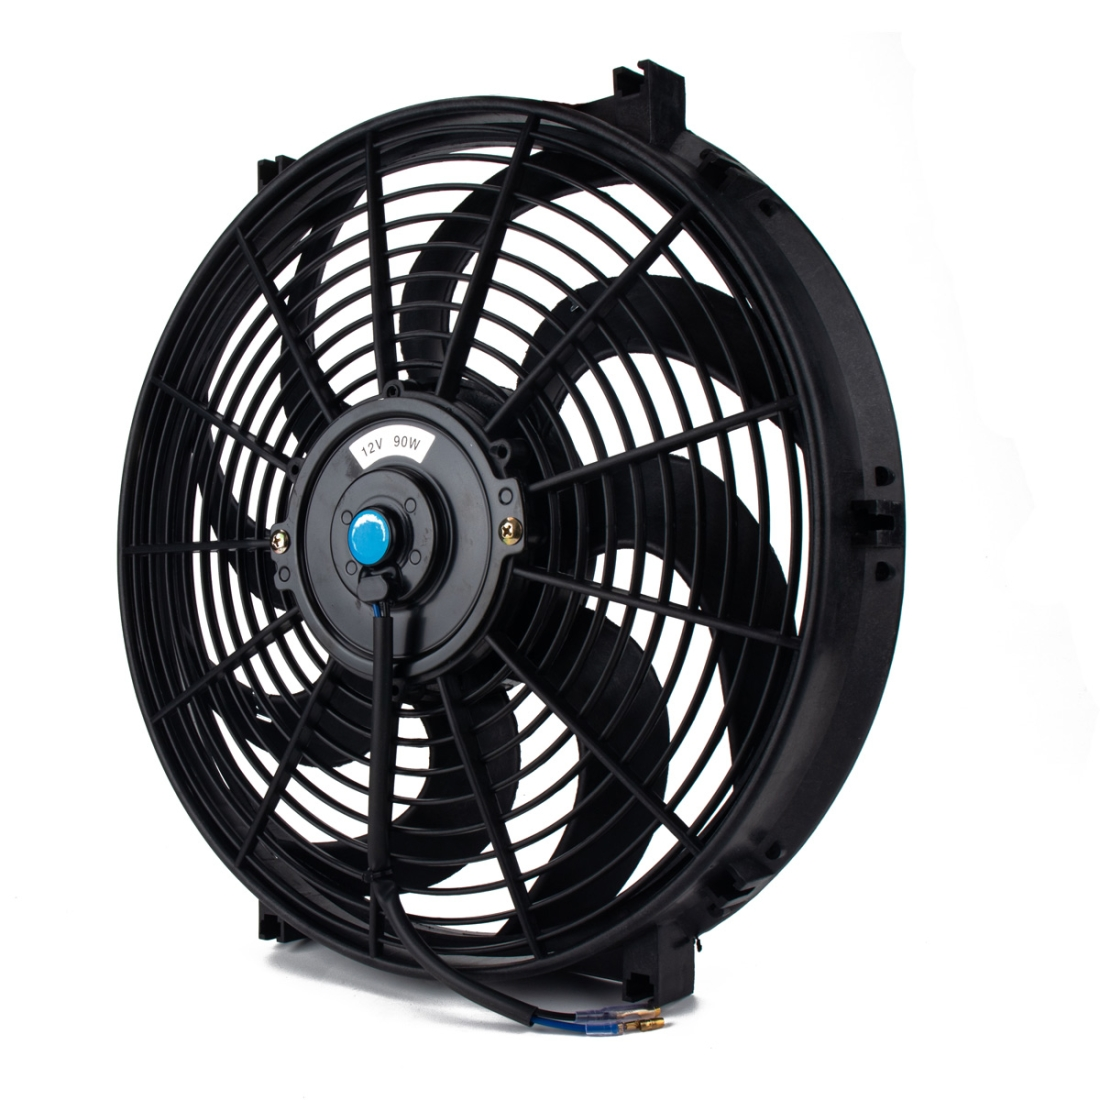 12V 90W 14 inch Car Cooling Fan High-power Modified Tank Fan Cooling Fan Powerful Fan Mini Air Conditioner with Mounting Accessories